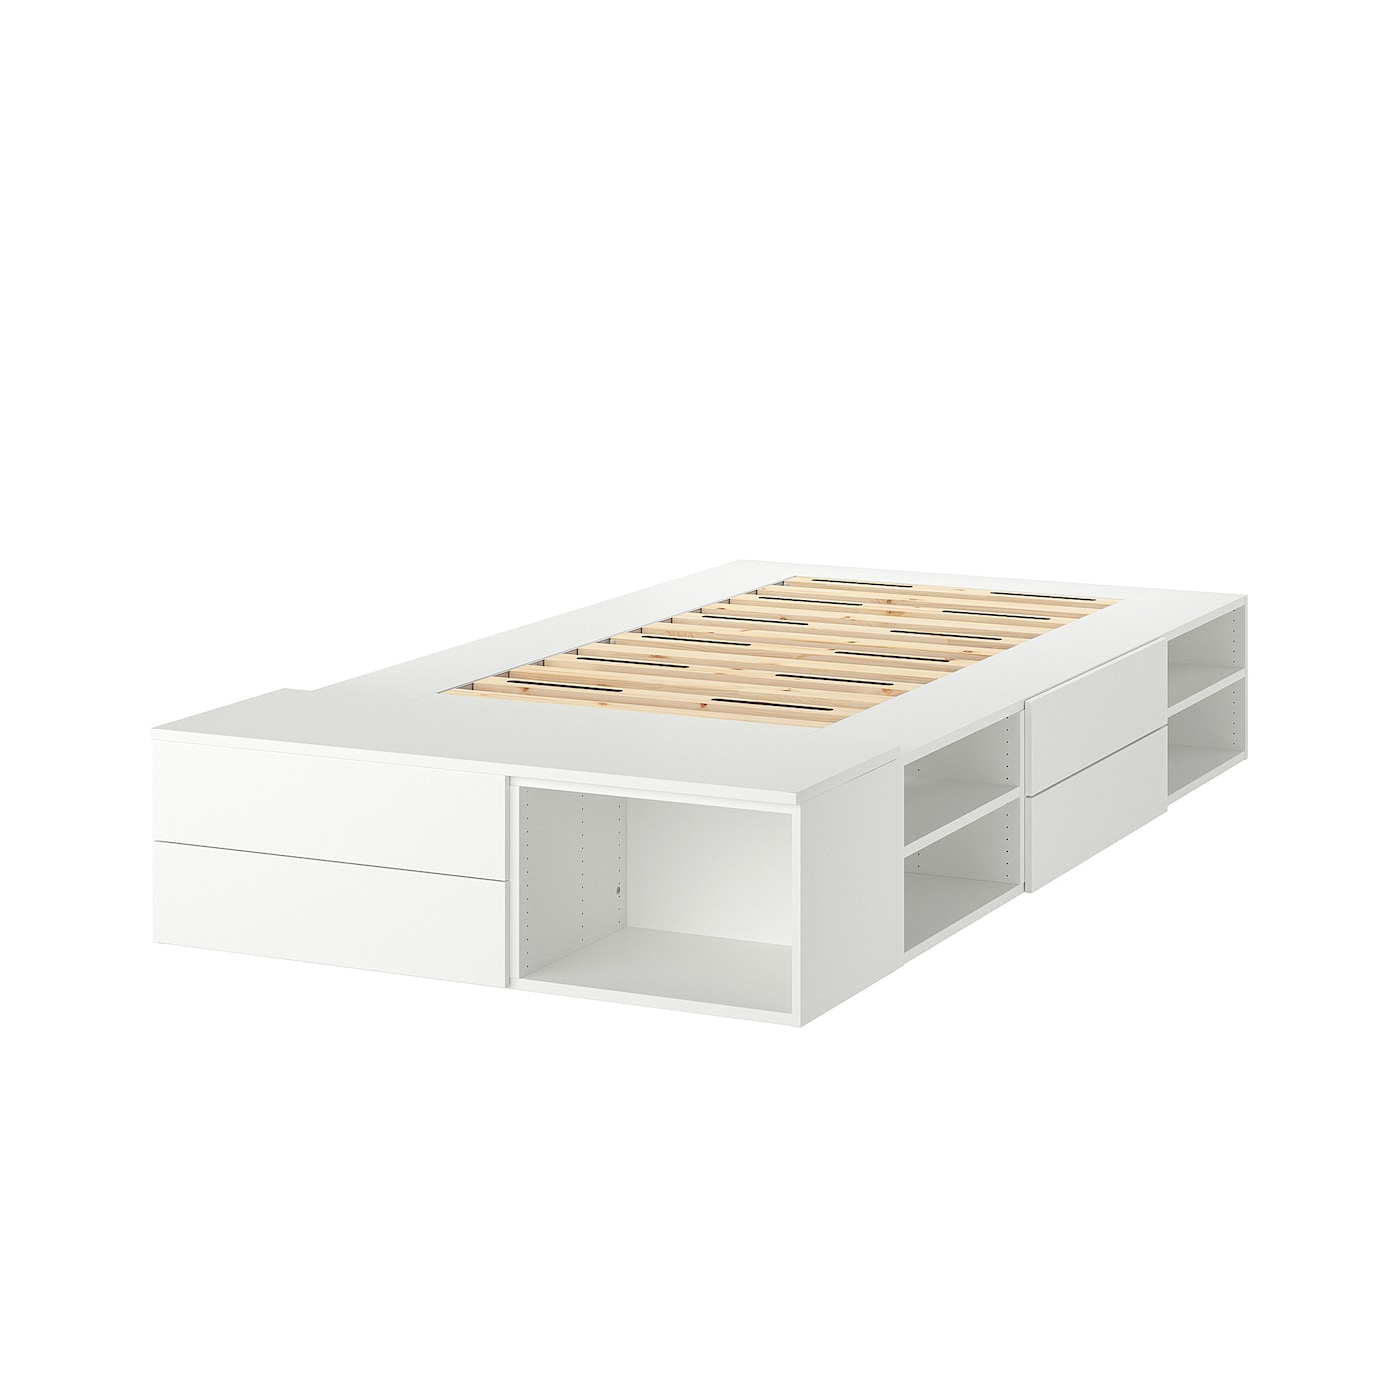 Platsa Bed Frame With 4 Drawers White Fonnes Ikea